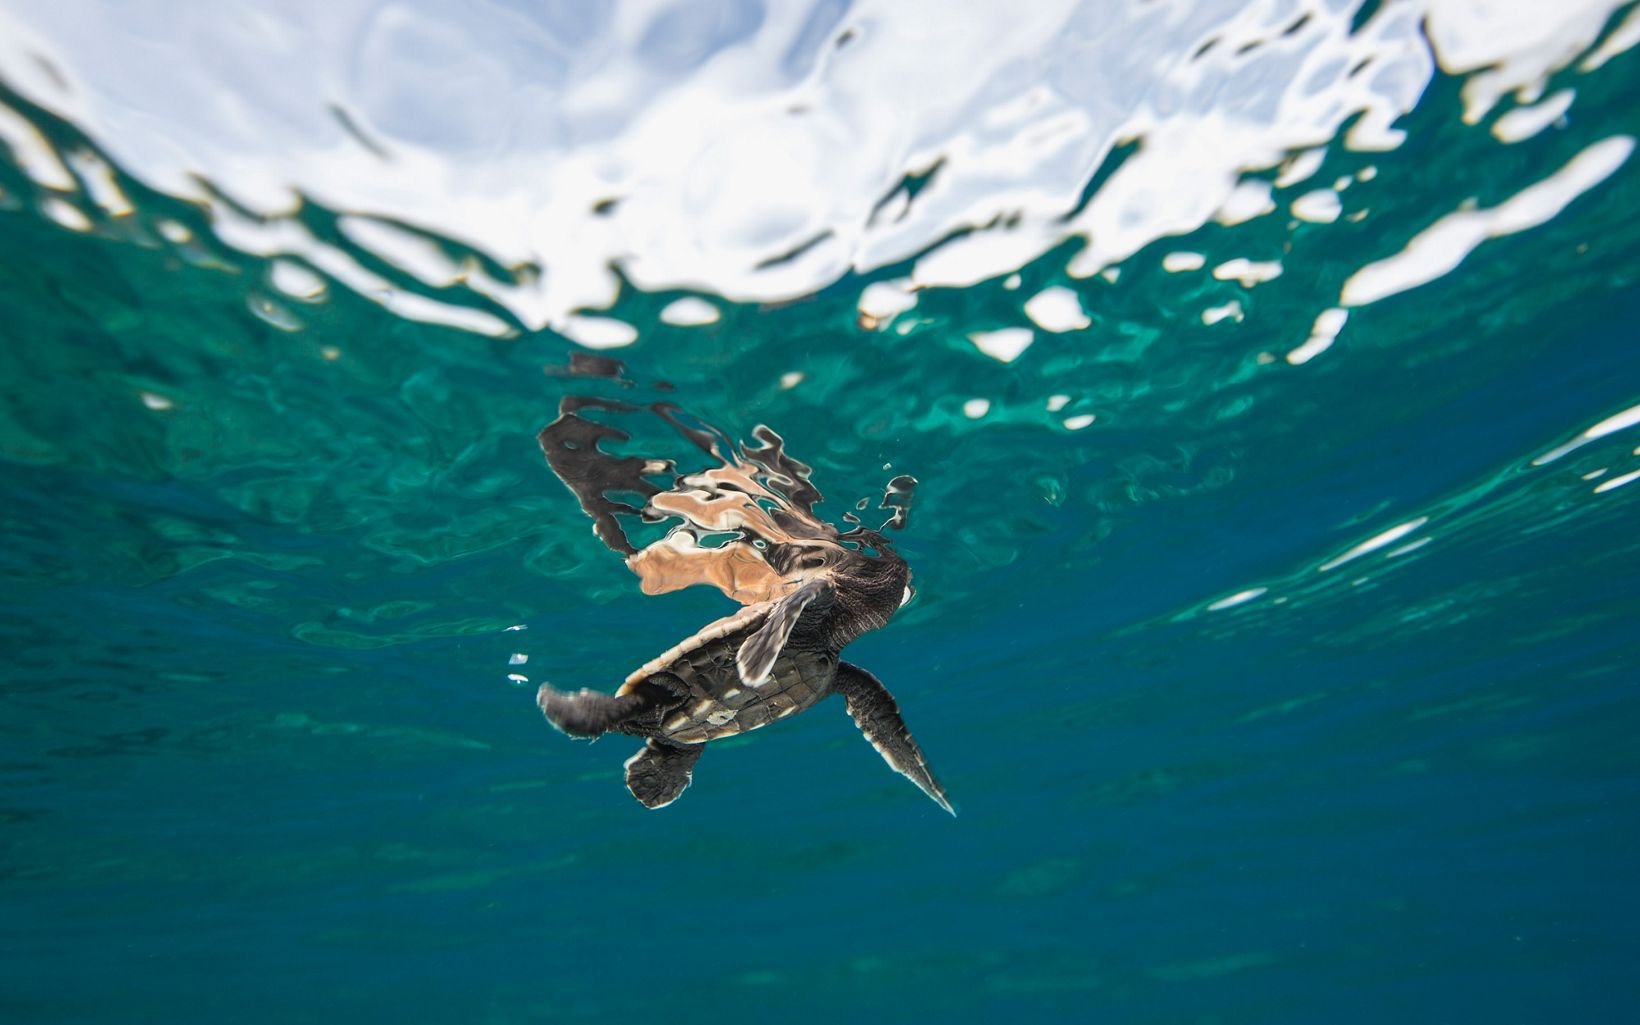 a baby sea turtle near the surface of the water